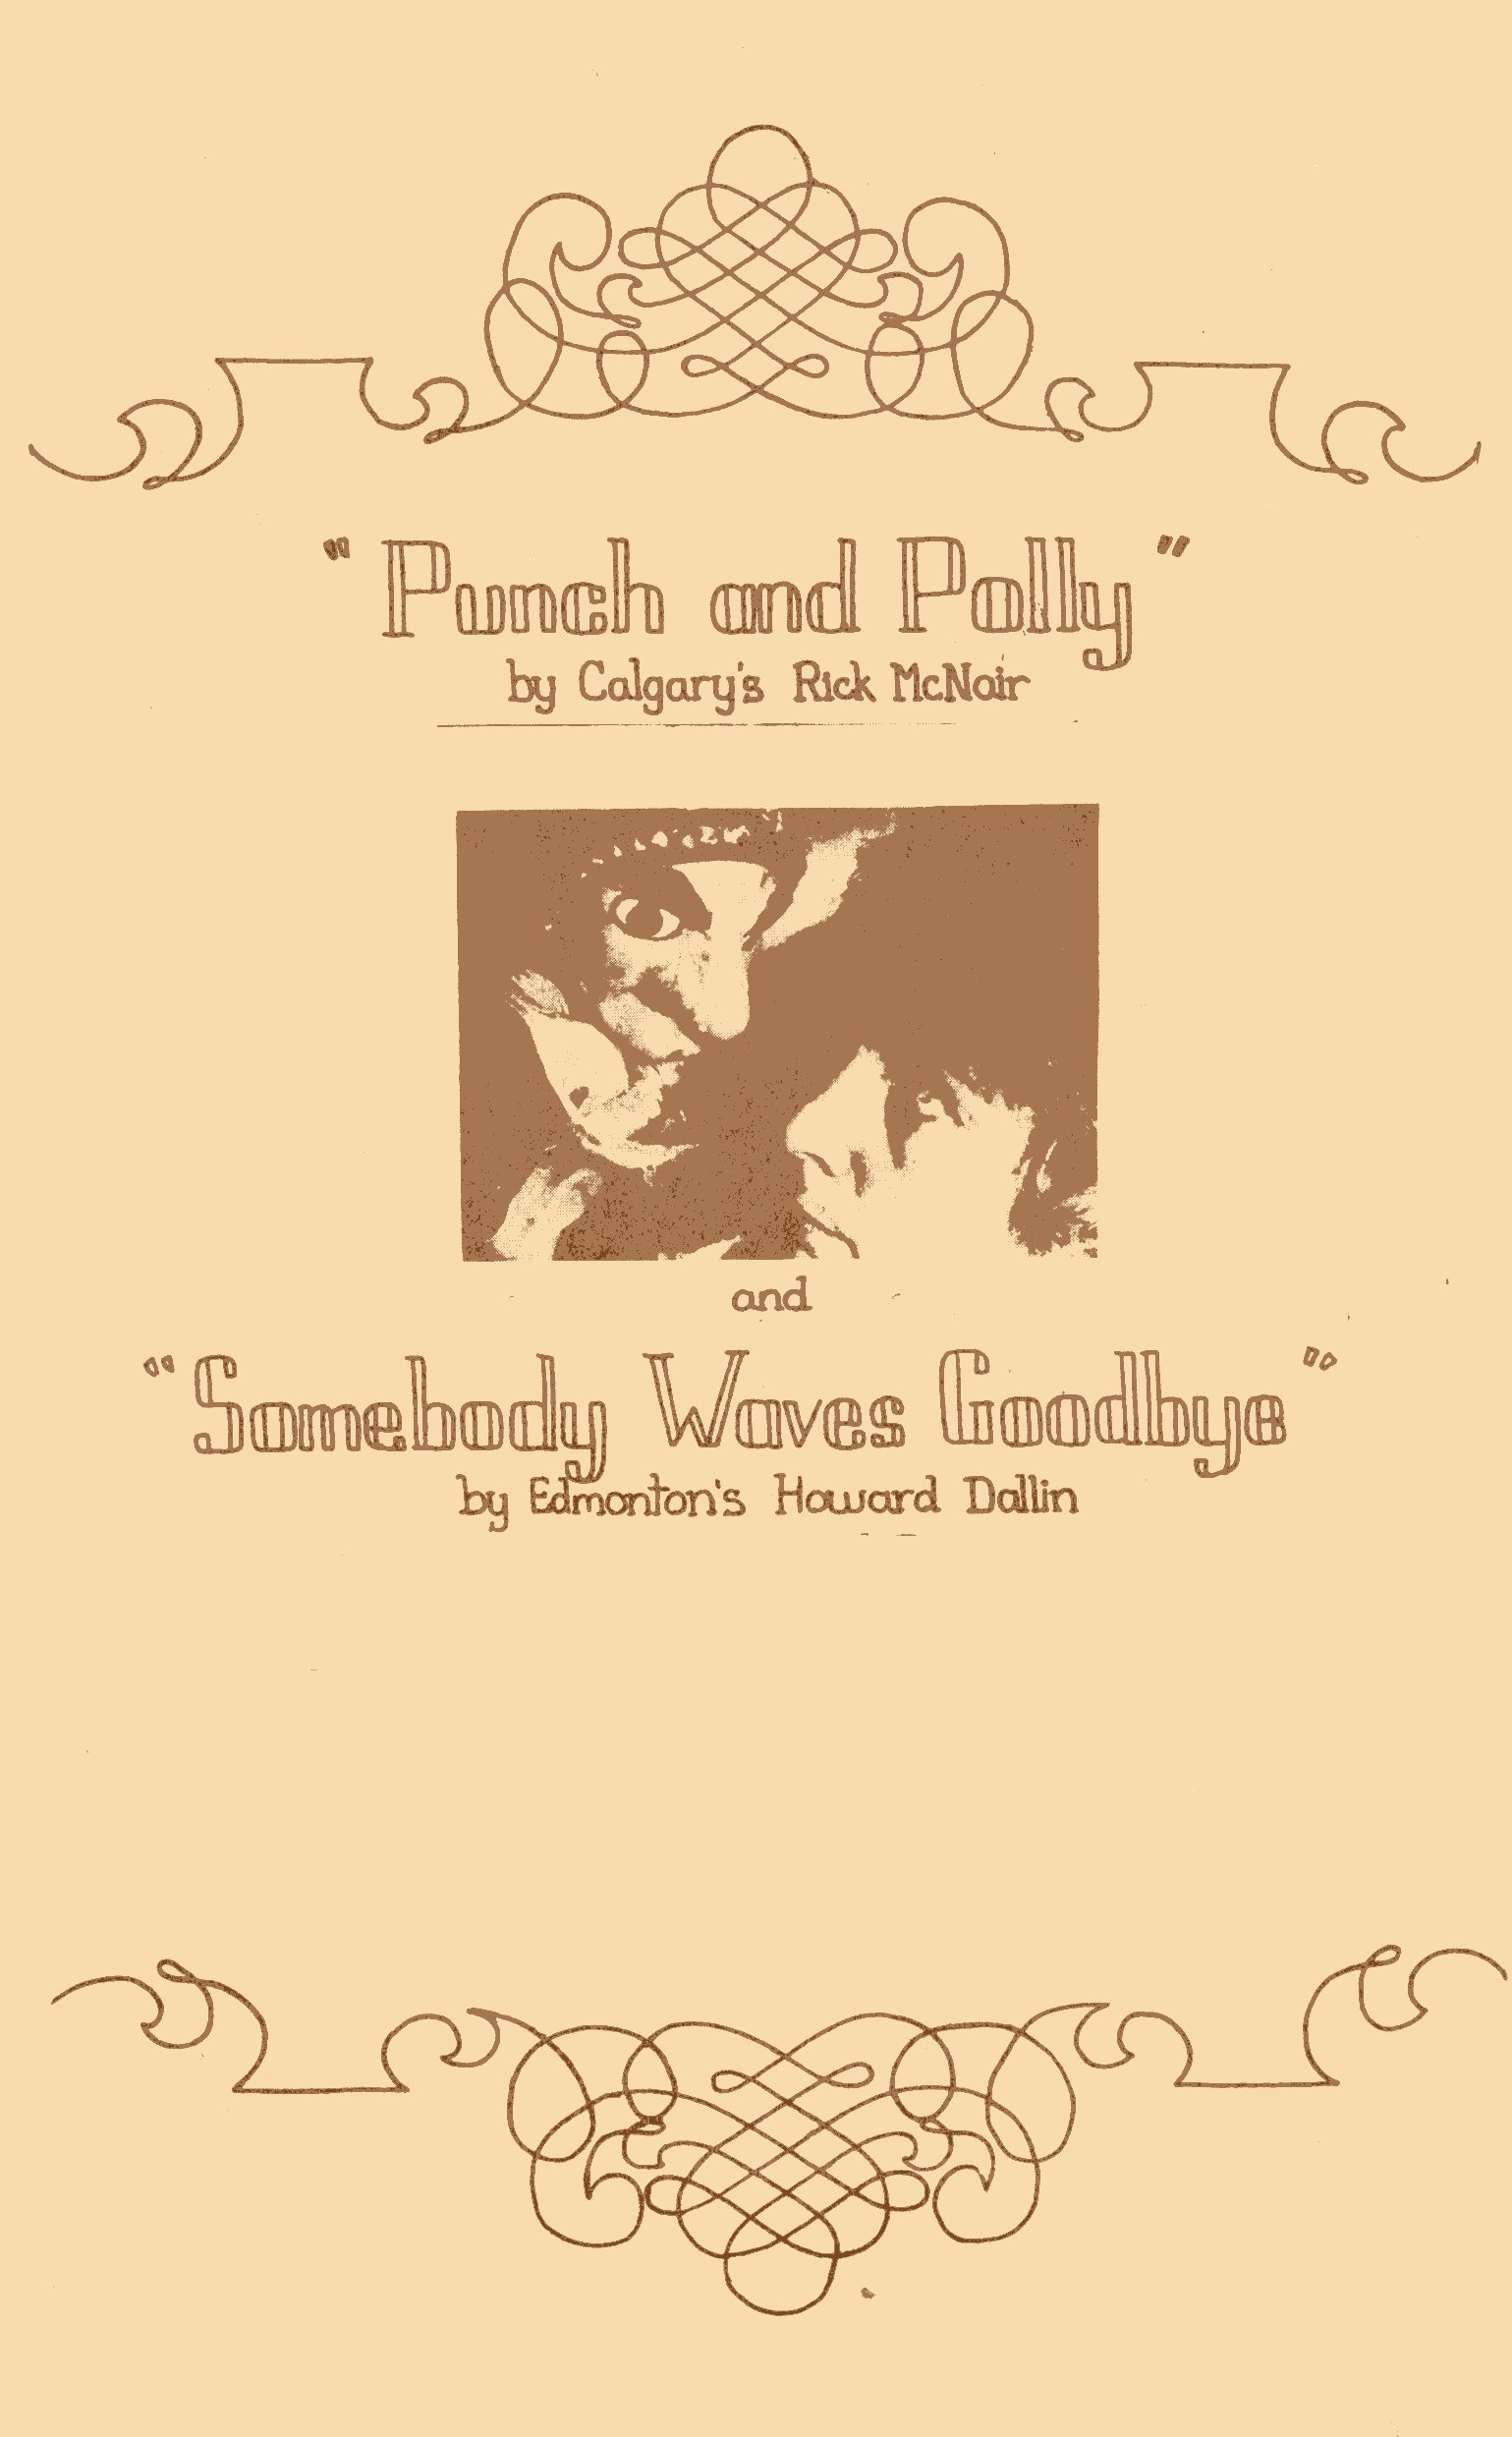 Punch and Polly and Somebody Waves Goodbye (1979) - Program Cover.jpg